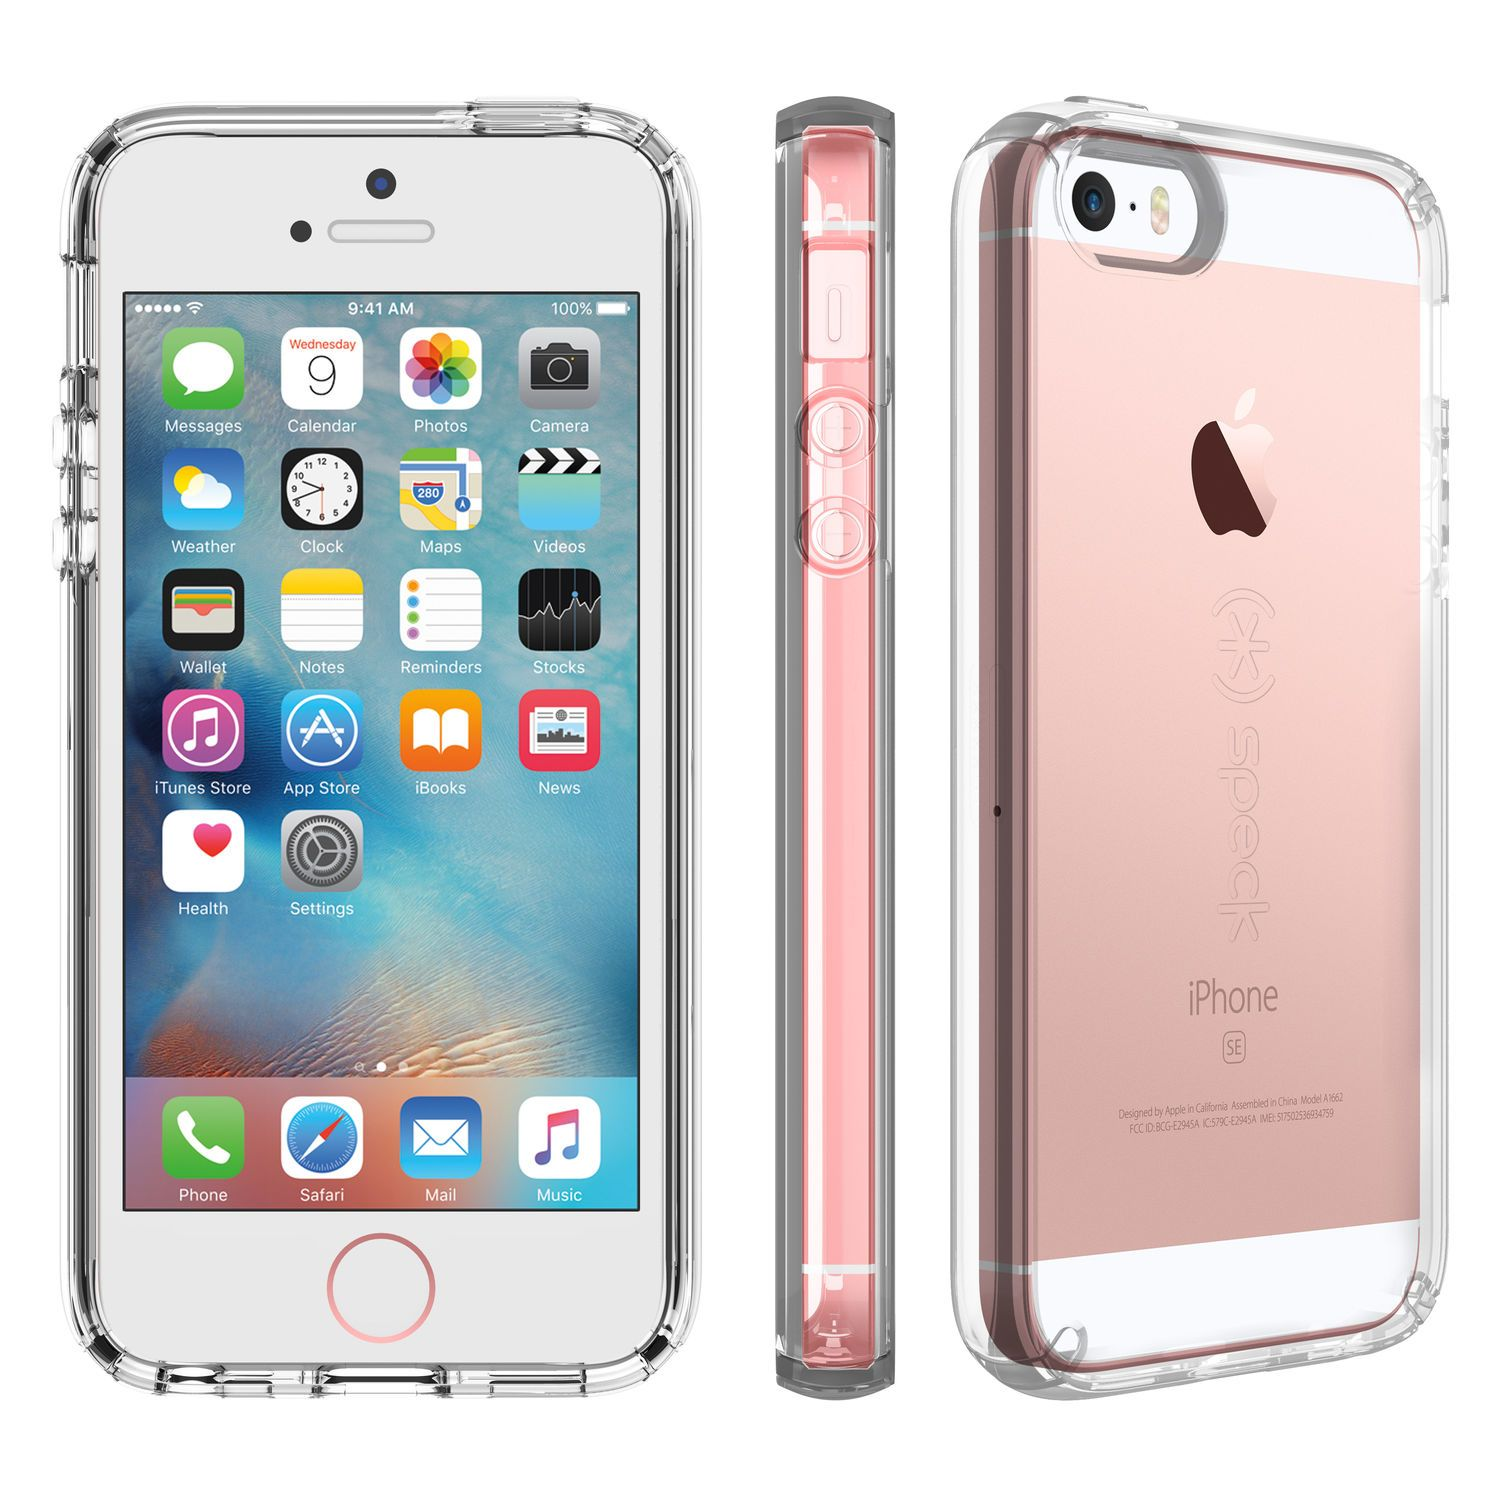 iphone cases 5s candyshell clear iphone se iphone 5s amp iphone 5 cases 3560